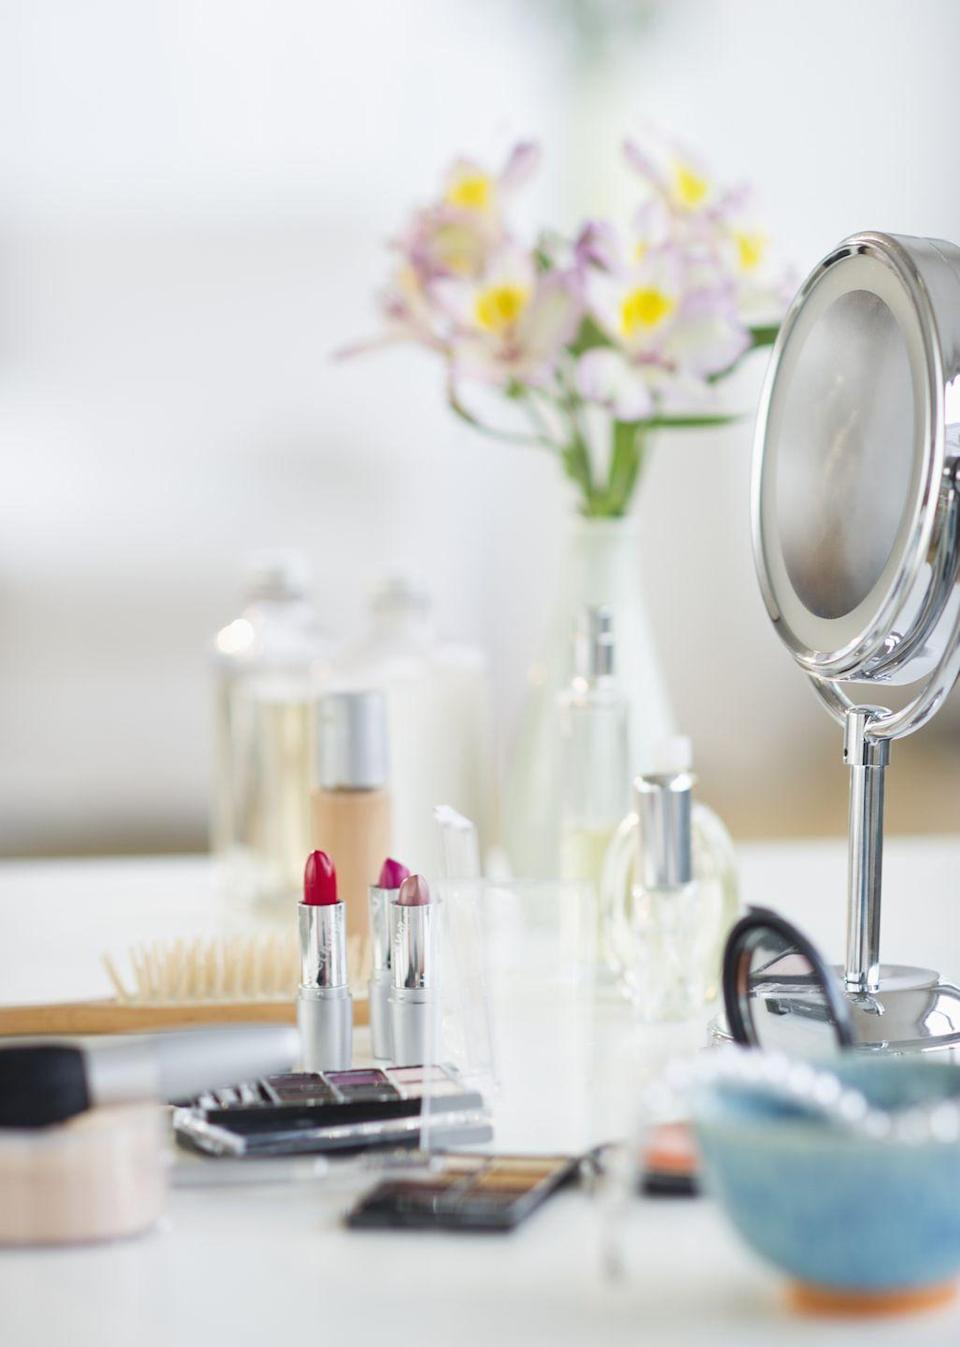 "<p>Again, you might hang on to that ancient mascara because it was expensive, but using old eye makeup can lead to a nasty infection. That's why experts recommend tossing it <a href=""https://www.goodhousekeeping.com/health/a26167/habits-hurting-eyes/ "" rel=""nofollow noopener"" target=""_blank"" data-ylk=""slk:after three months"" class=""link rapid-noclick-resp"">after three months</a>.</p>"